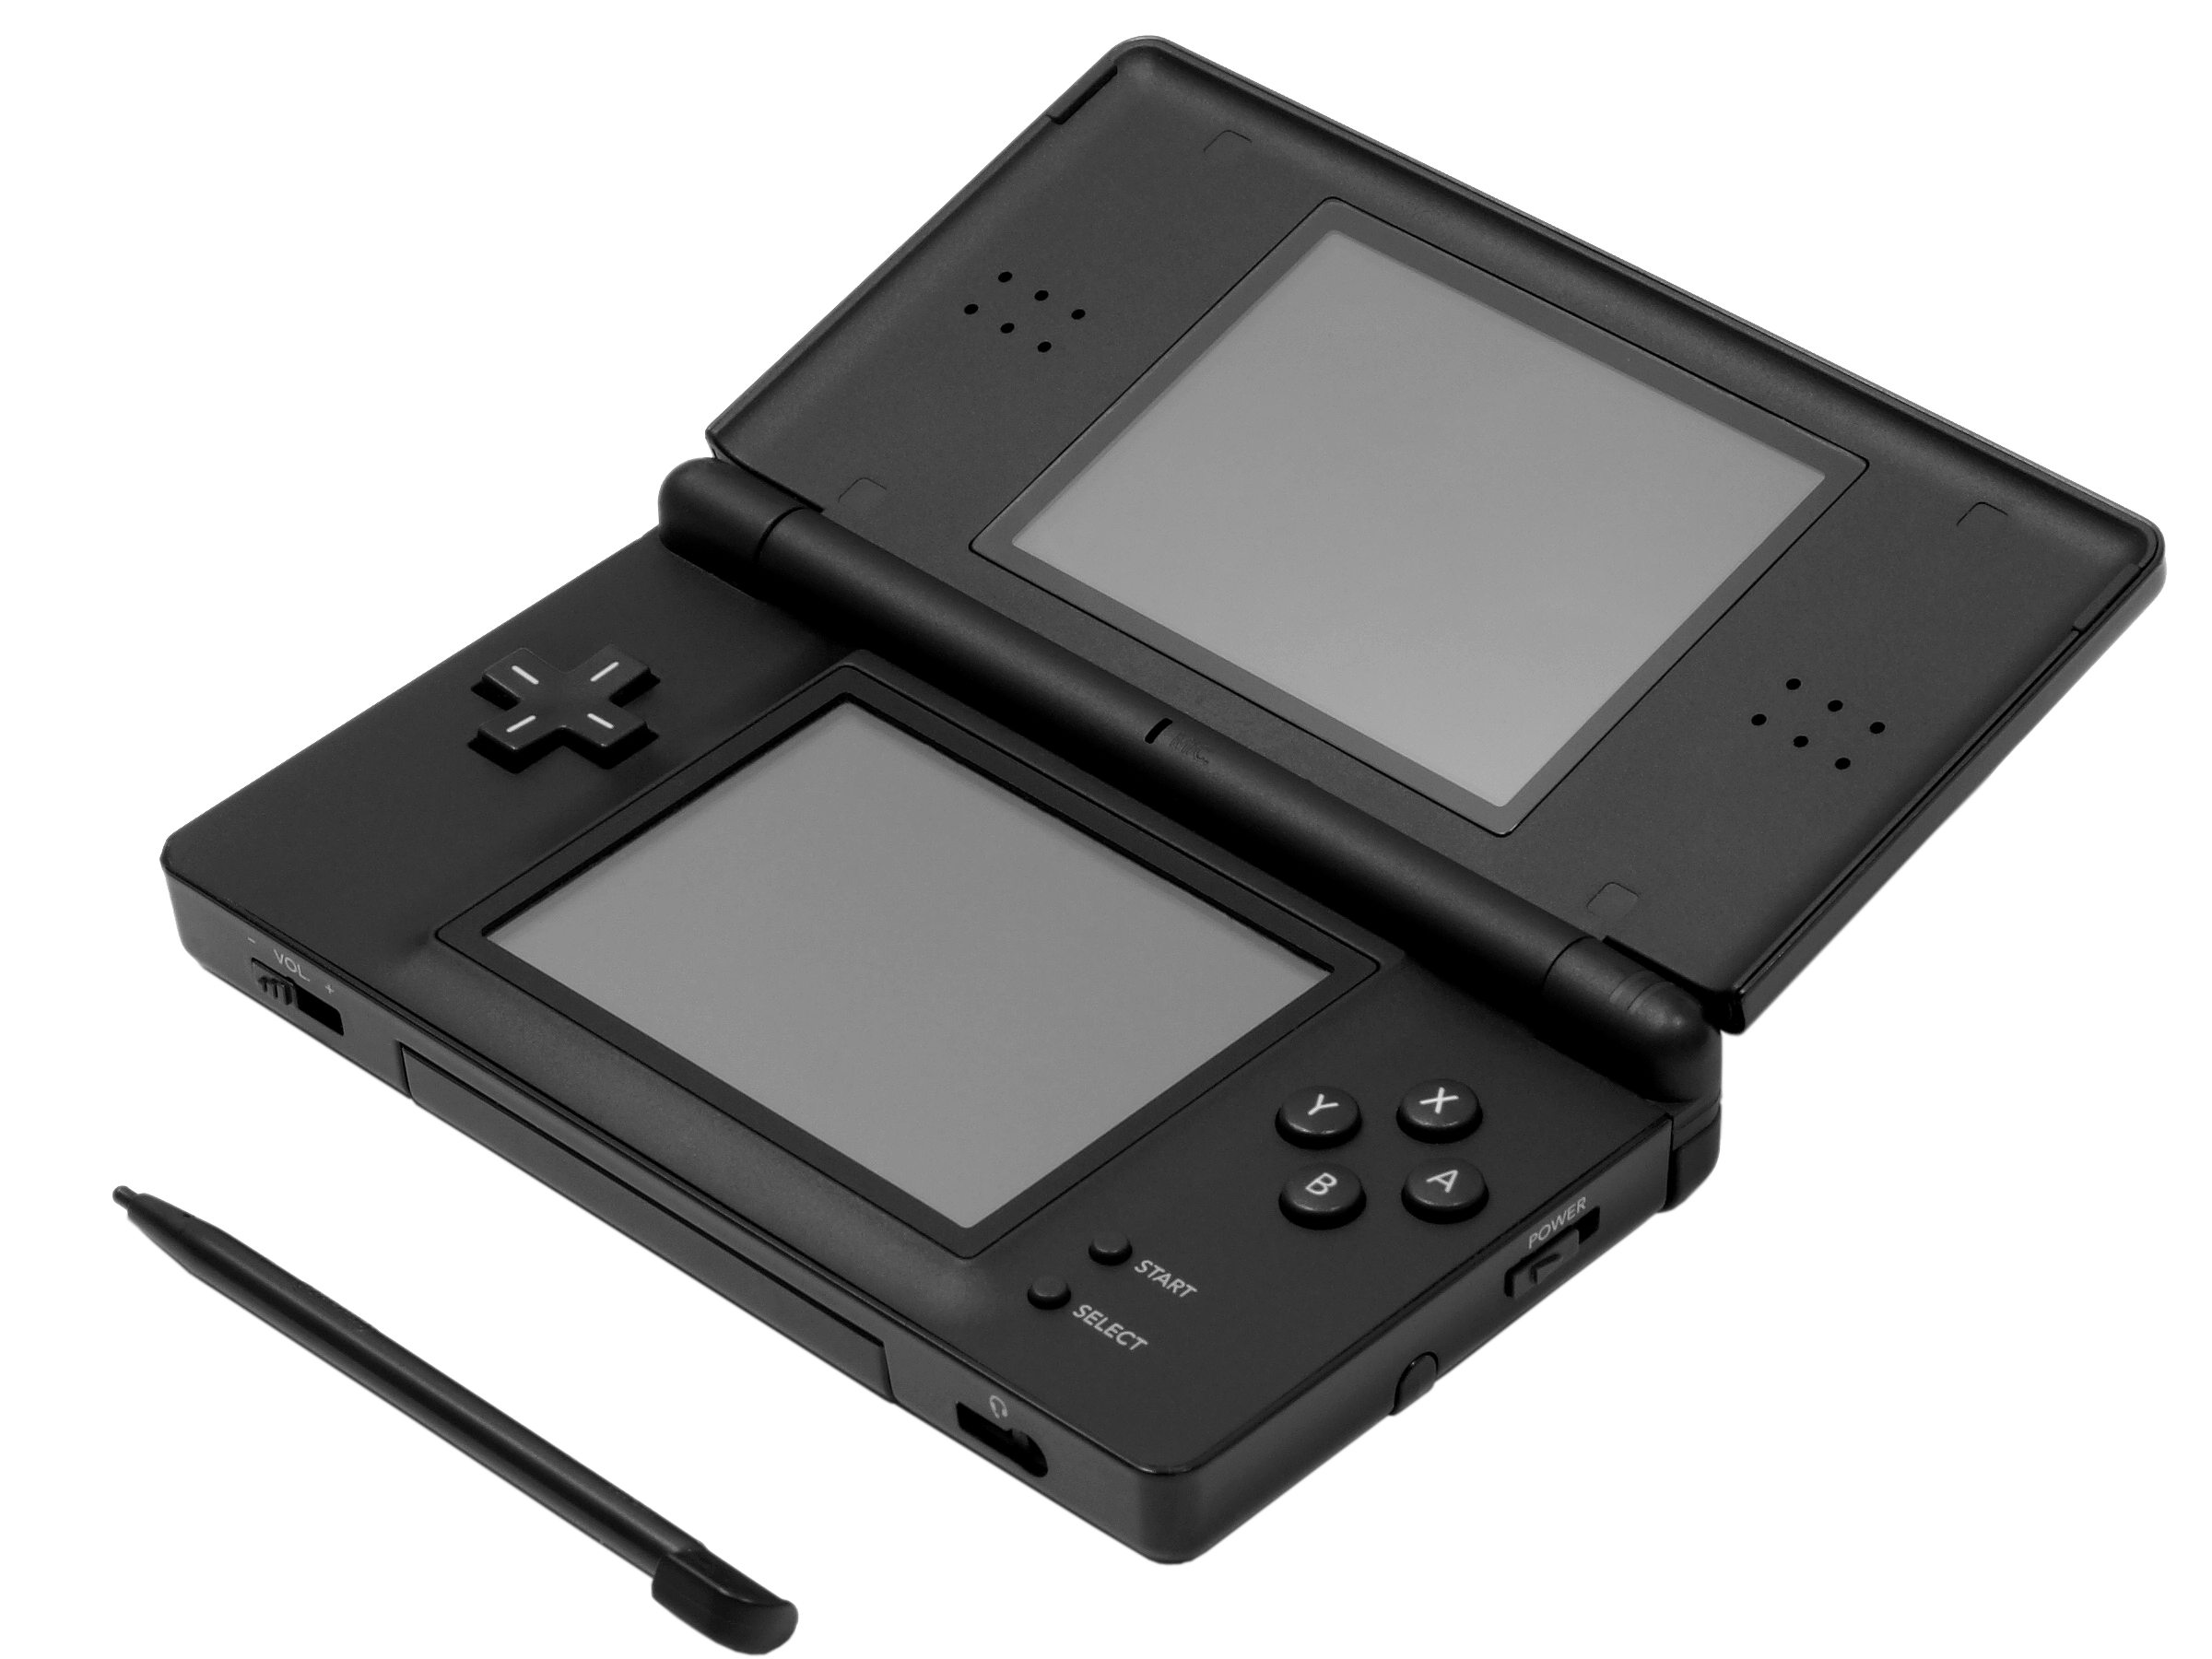 [Updated] 5(+2) Best DS Emulators for PCs